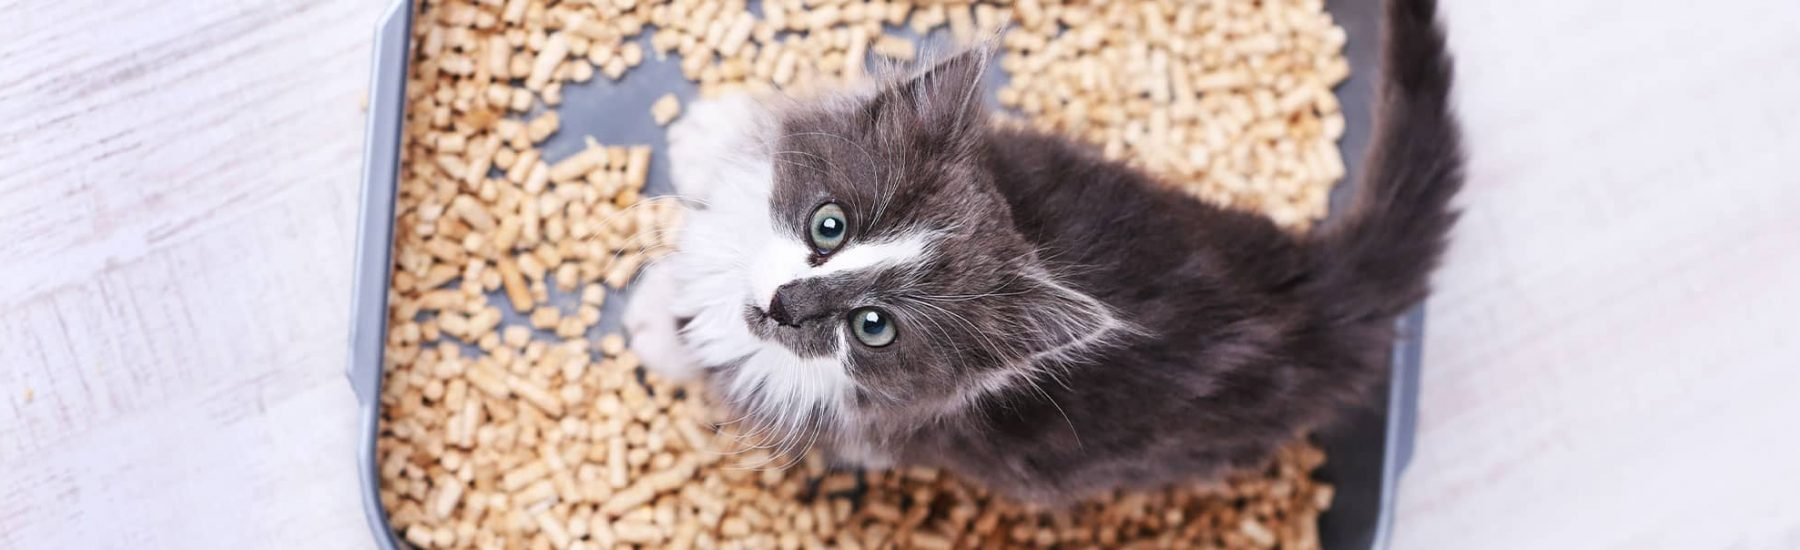 A cat looks up standing on a tray of cat food.